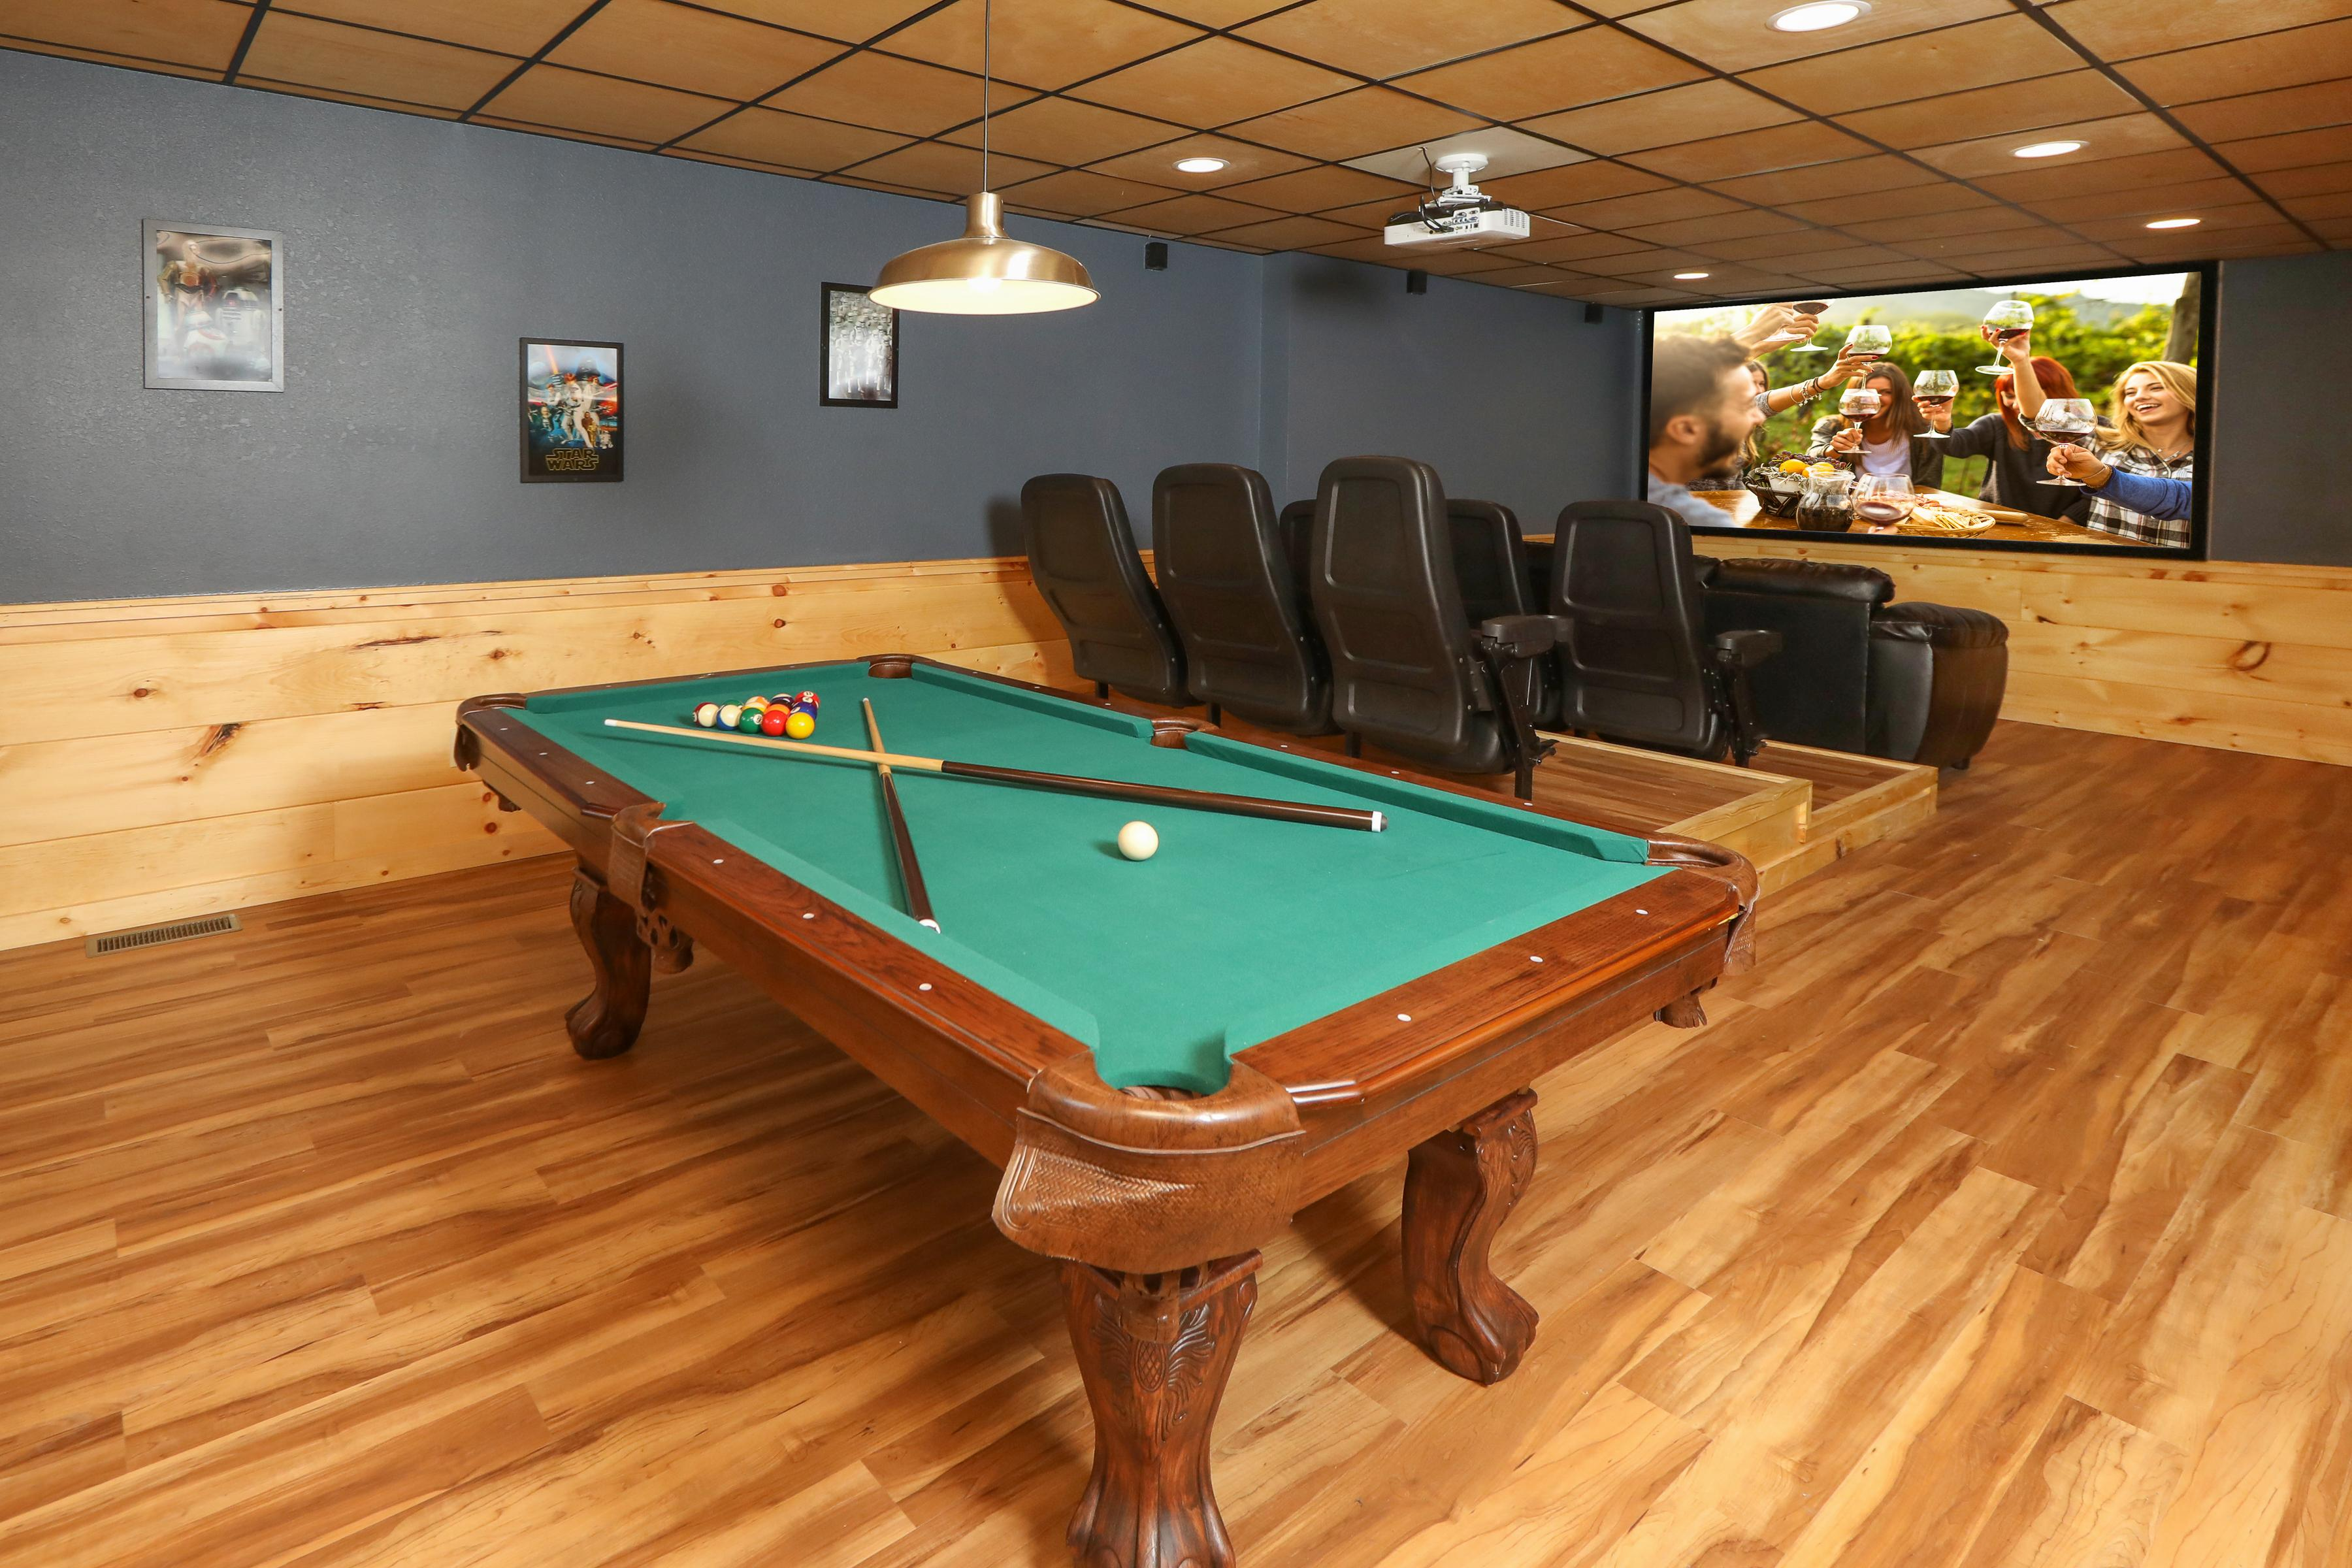 Rack up the pool table or catch a movie in the dedicated theater room!